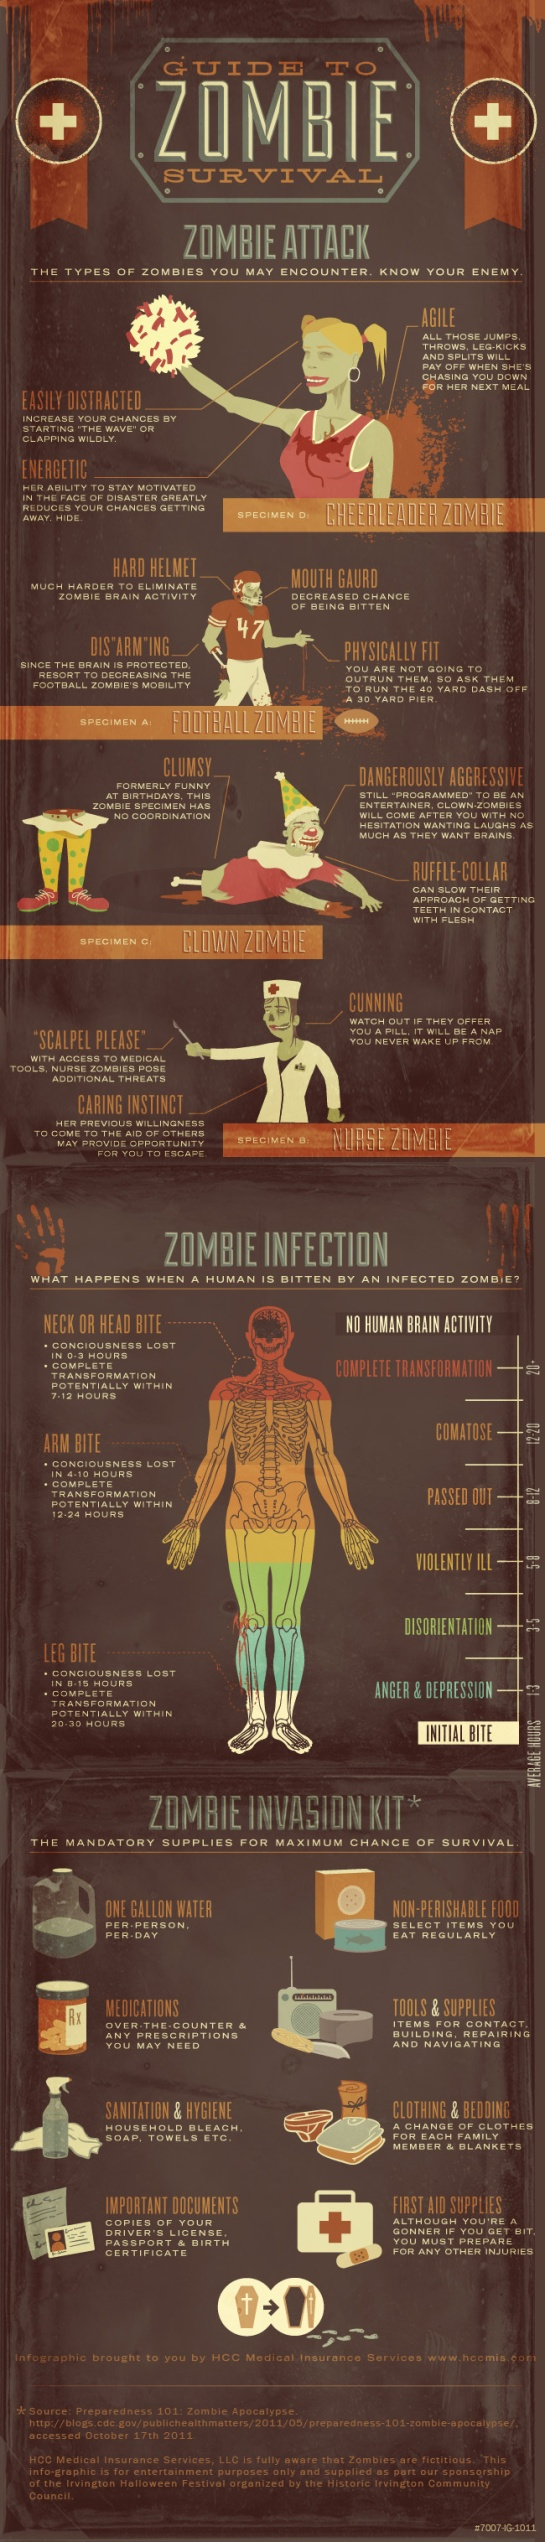 "CDC ""Guide To Zombie Survival"", Infografik (c) http://blogs.cdc.gov"